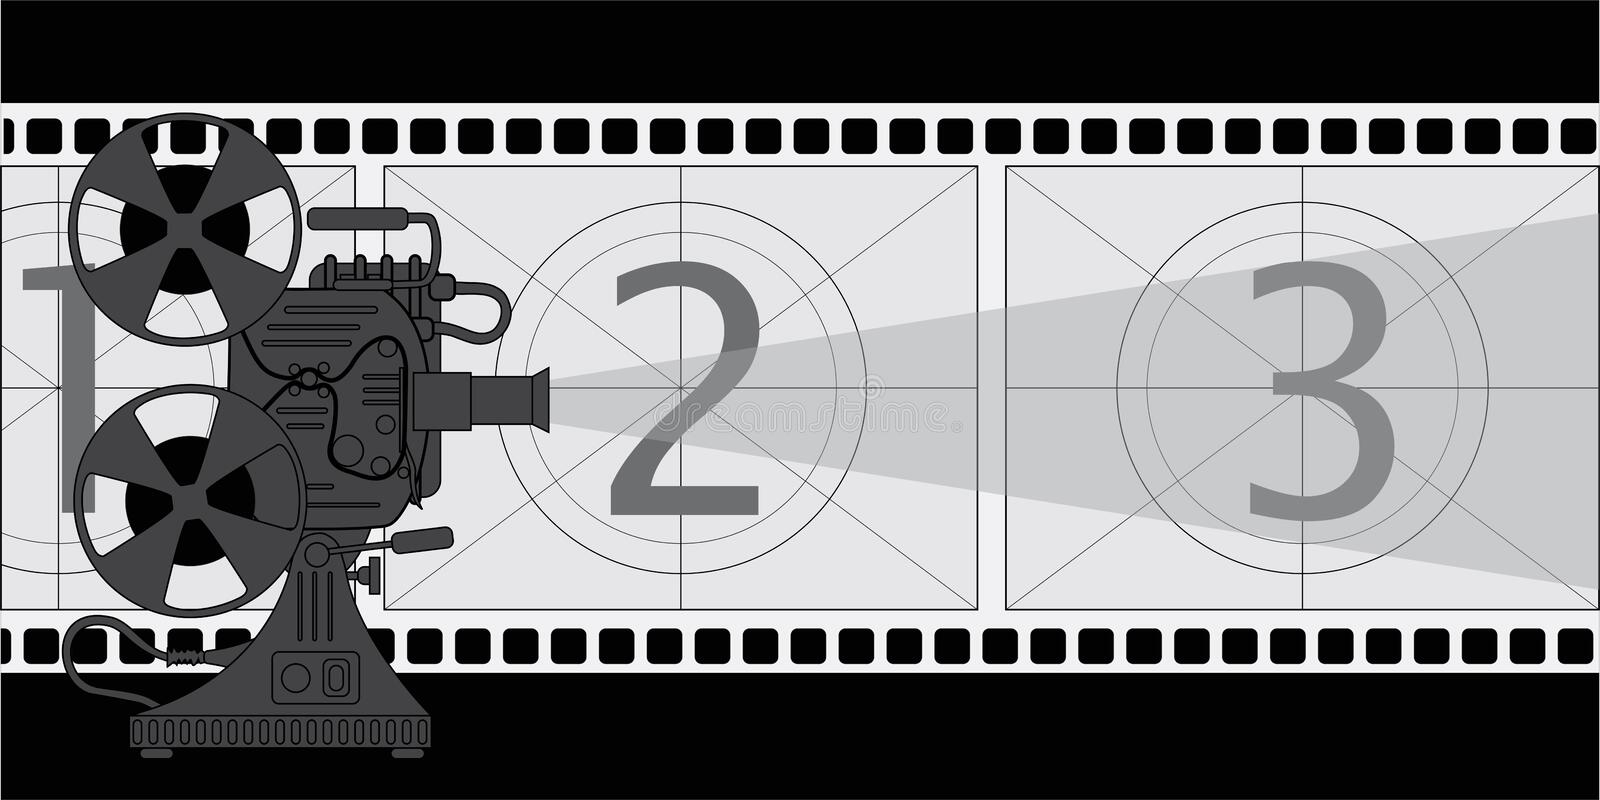 Film projector, a poster on the theme of the film. Film projector and screen stylized film royalty free illustration